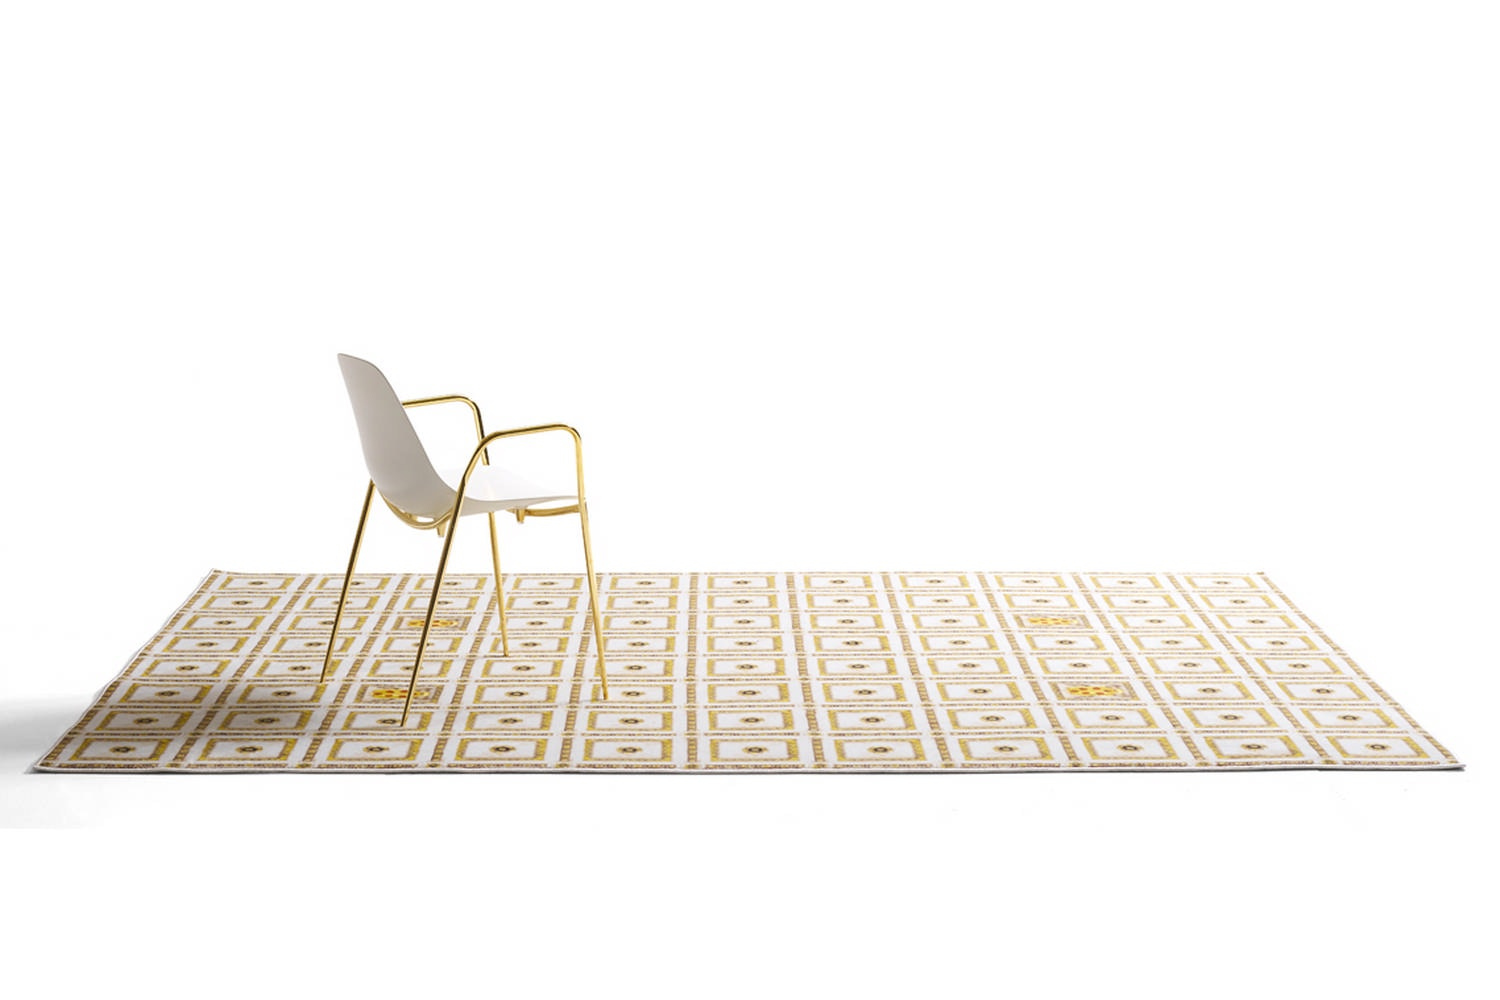 Firenze Carpet Collection by Sebastiano Tosi + Lapo Ciatti for Opinion Ciatti